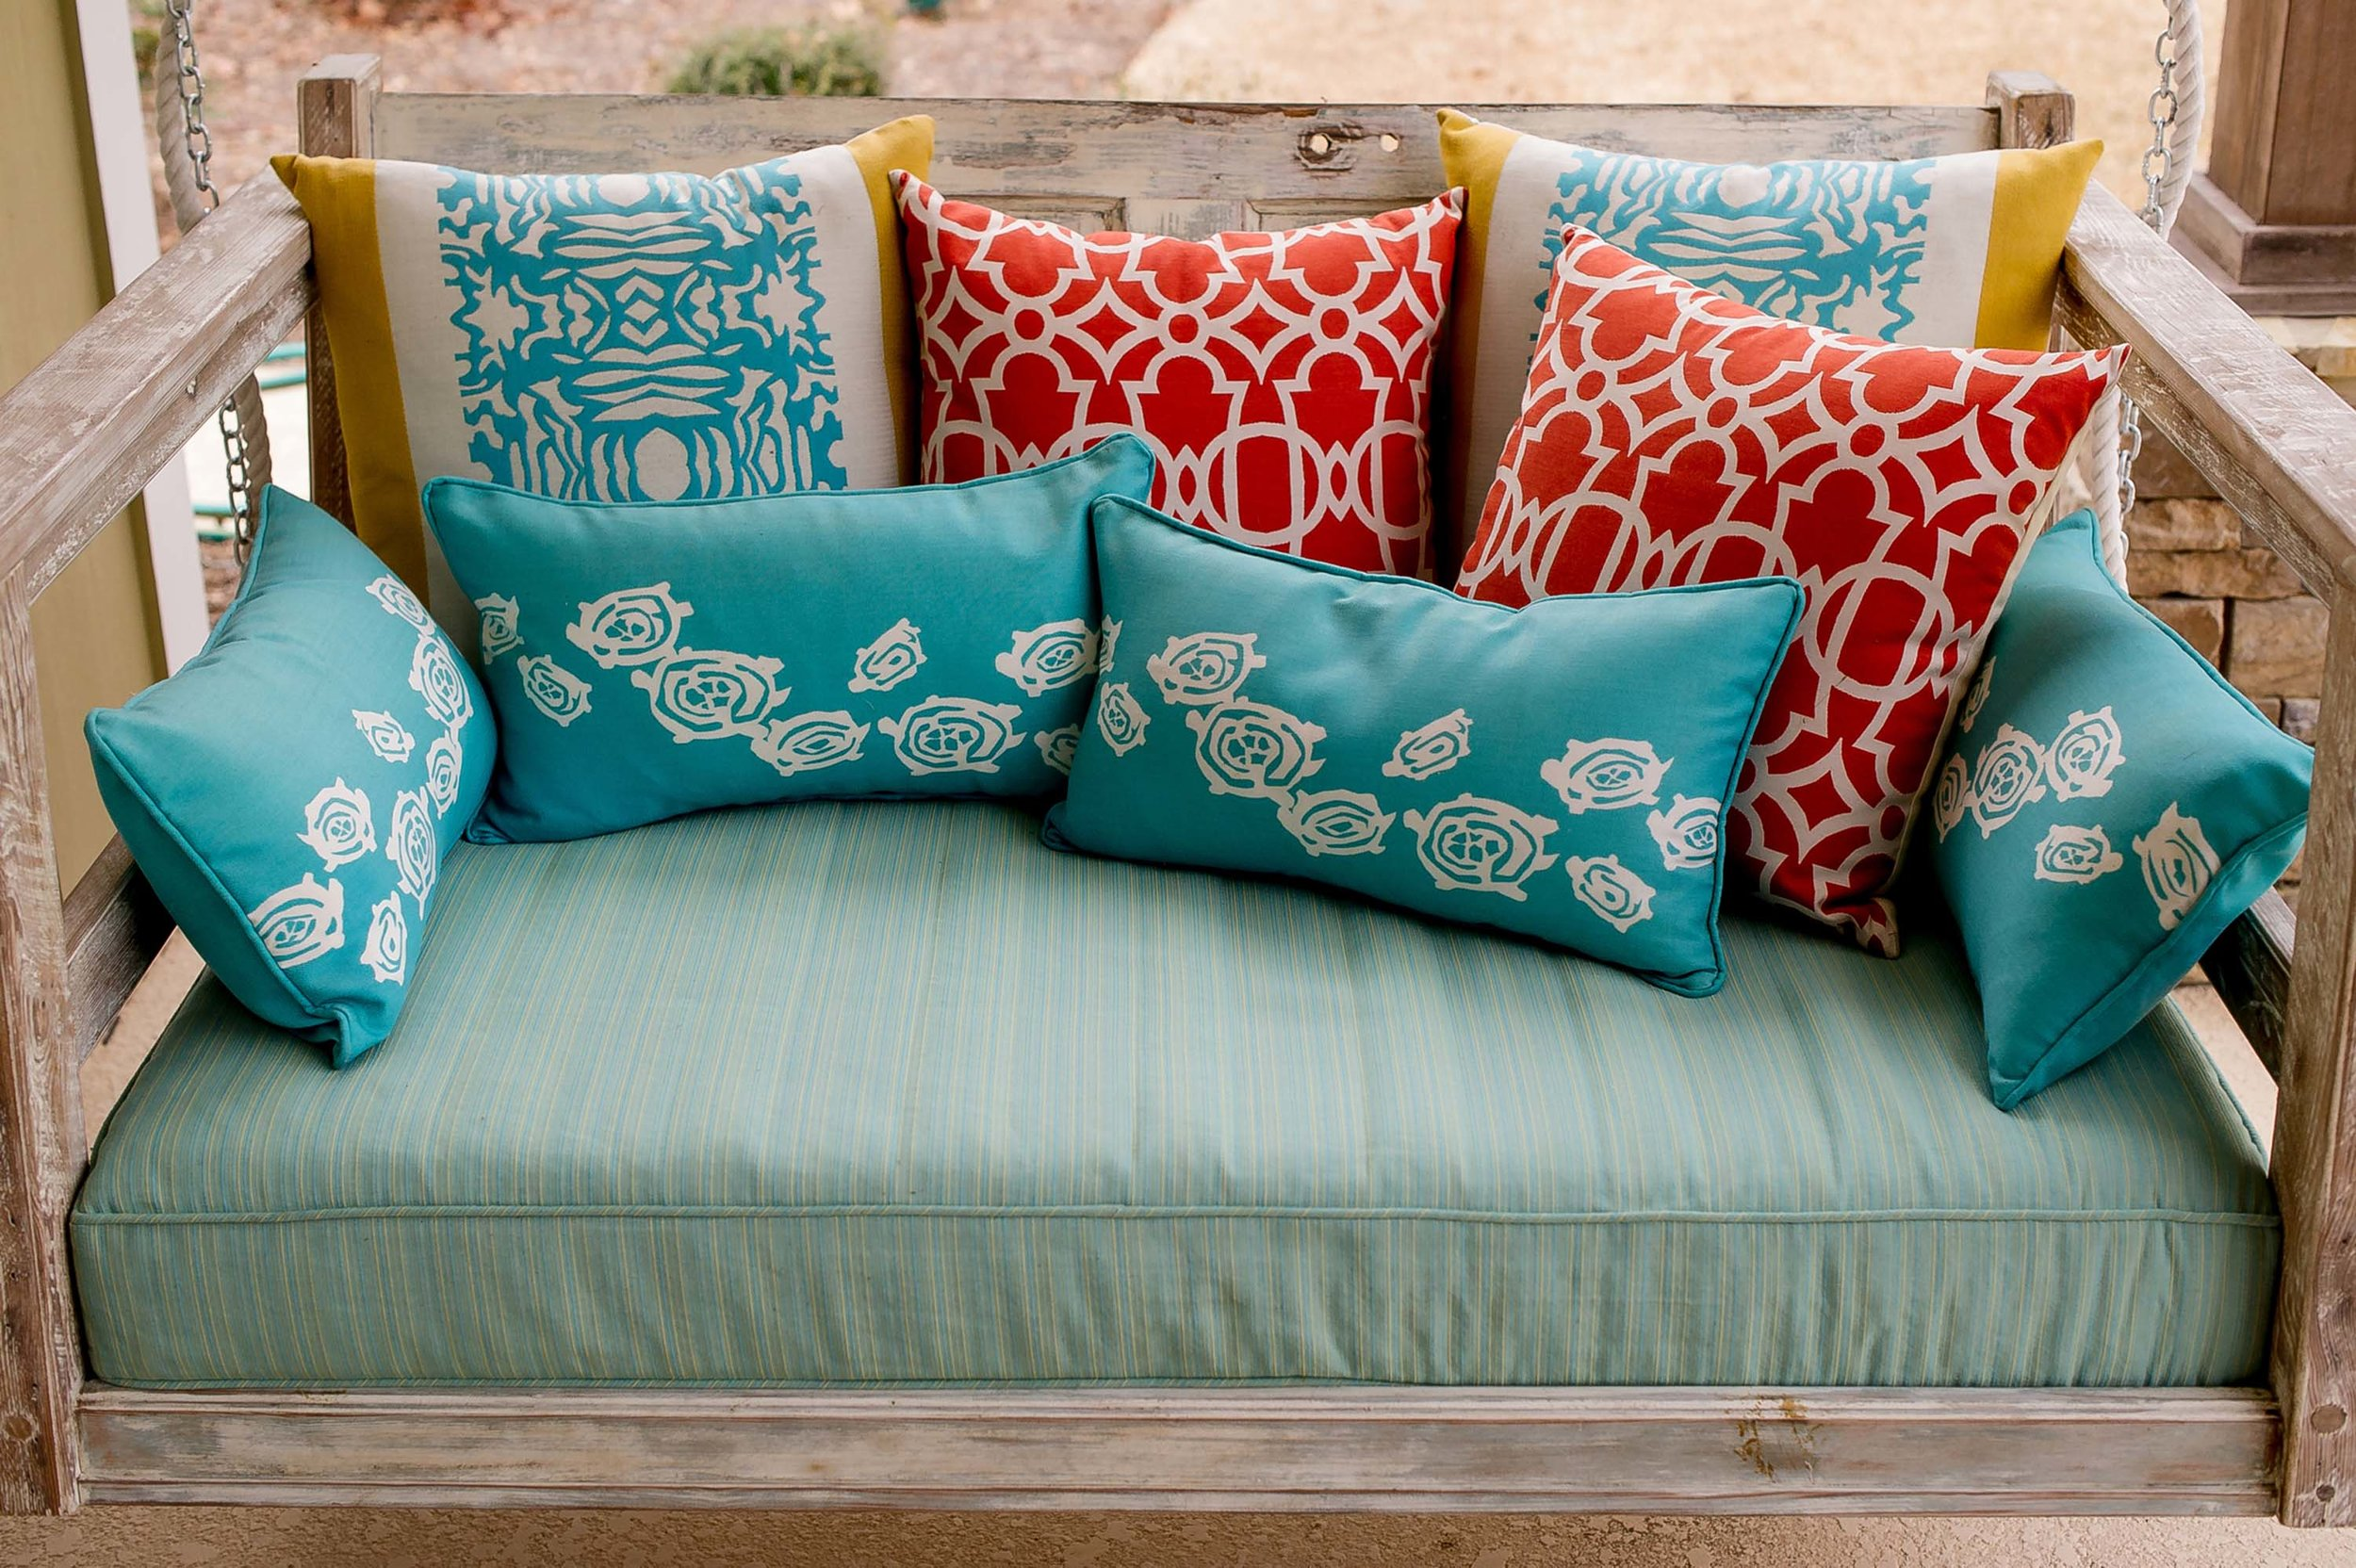 Blue and Coral Elaine Smith Outdoor Pillows